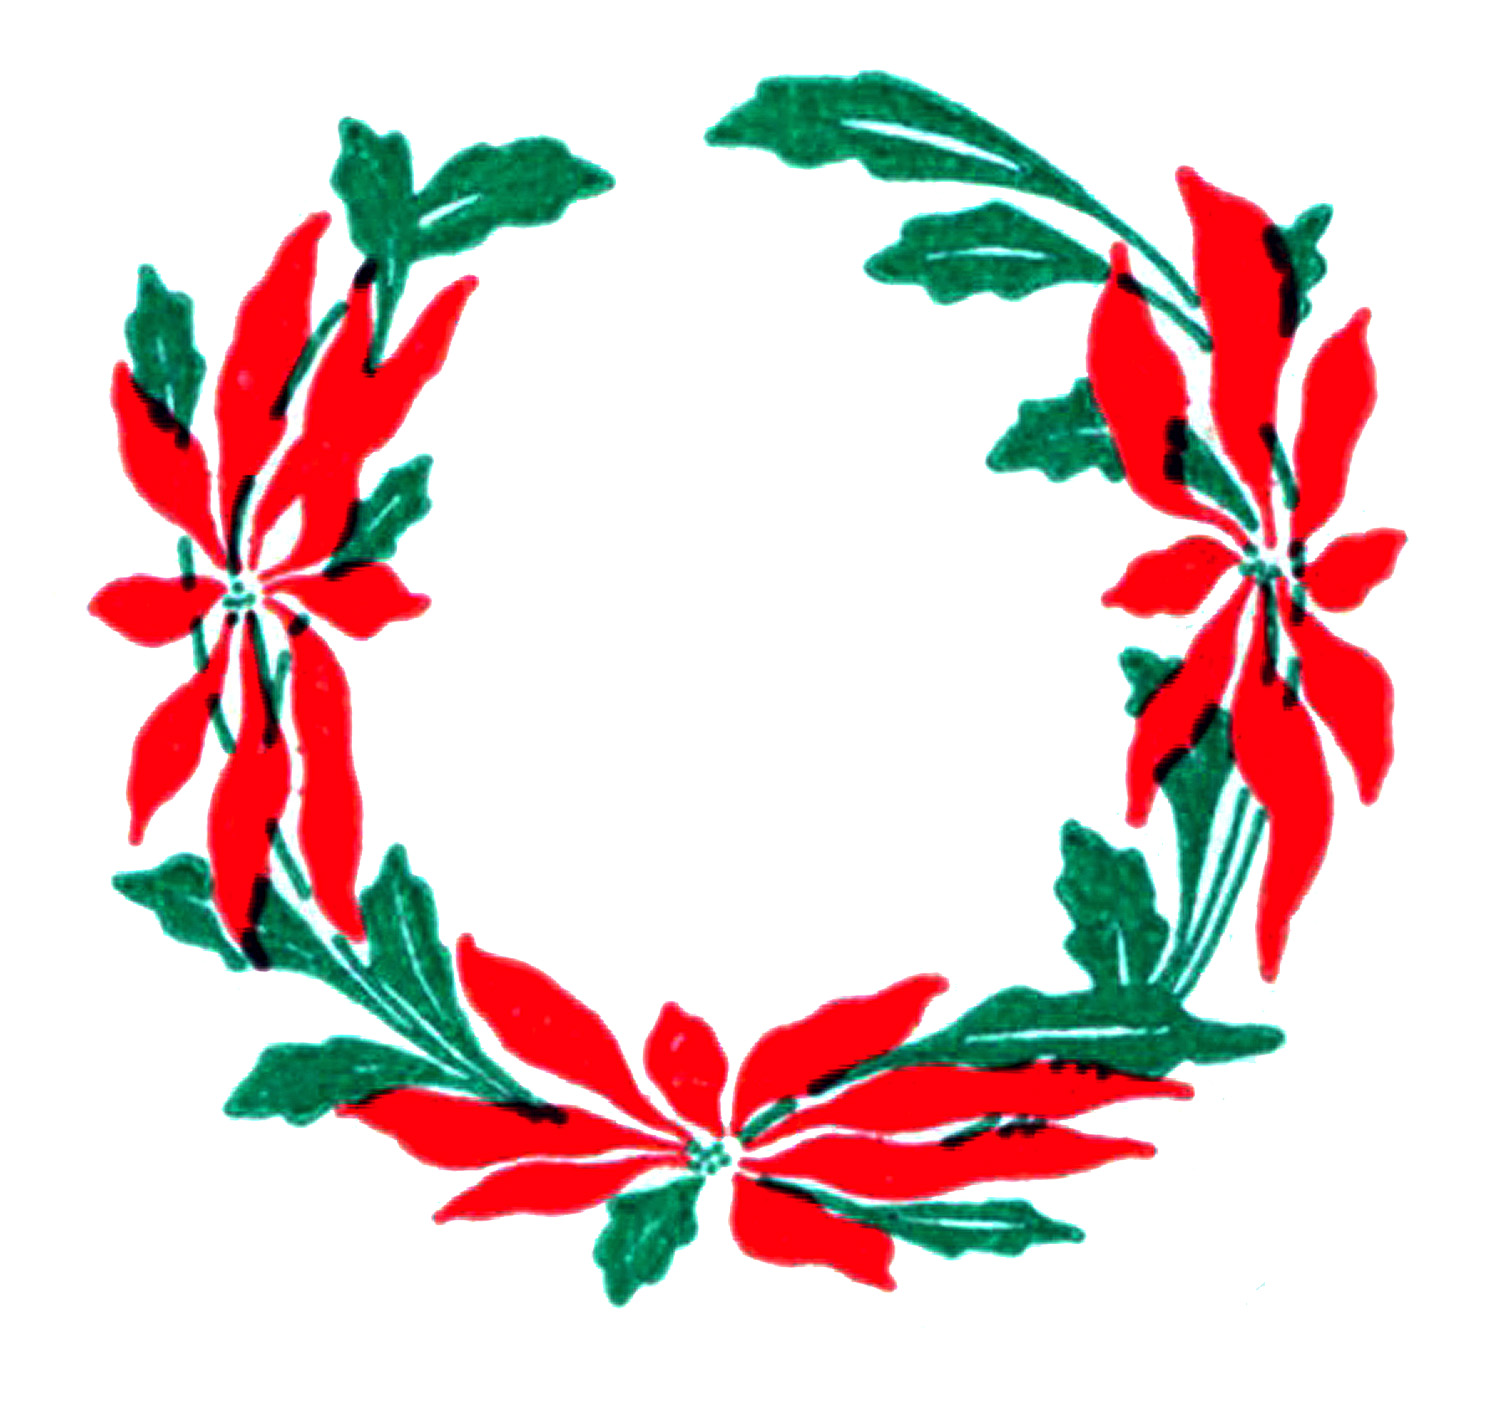 Poinsettia Christmas Wreath Clip Art